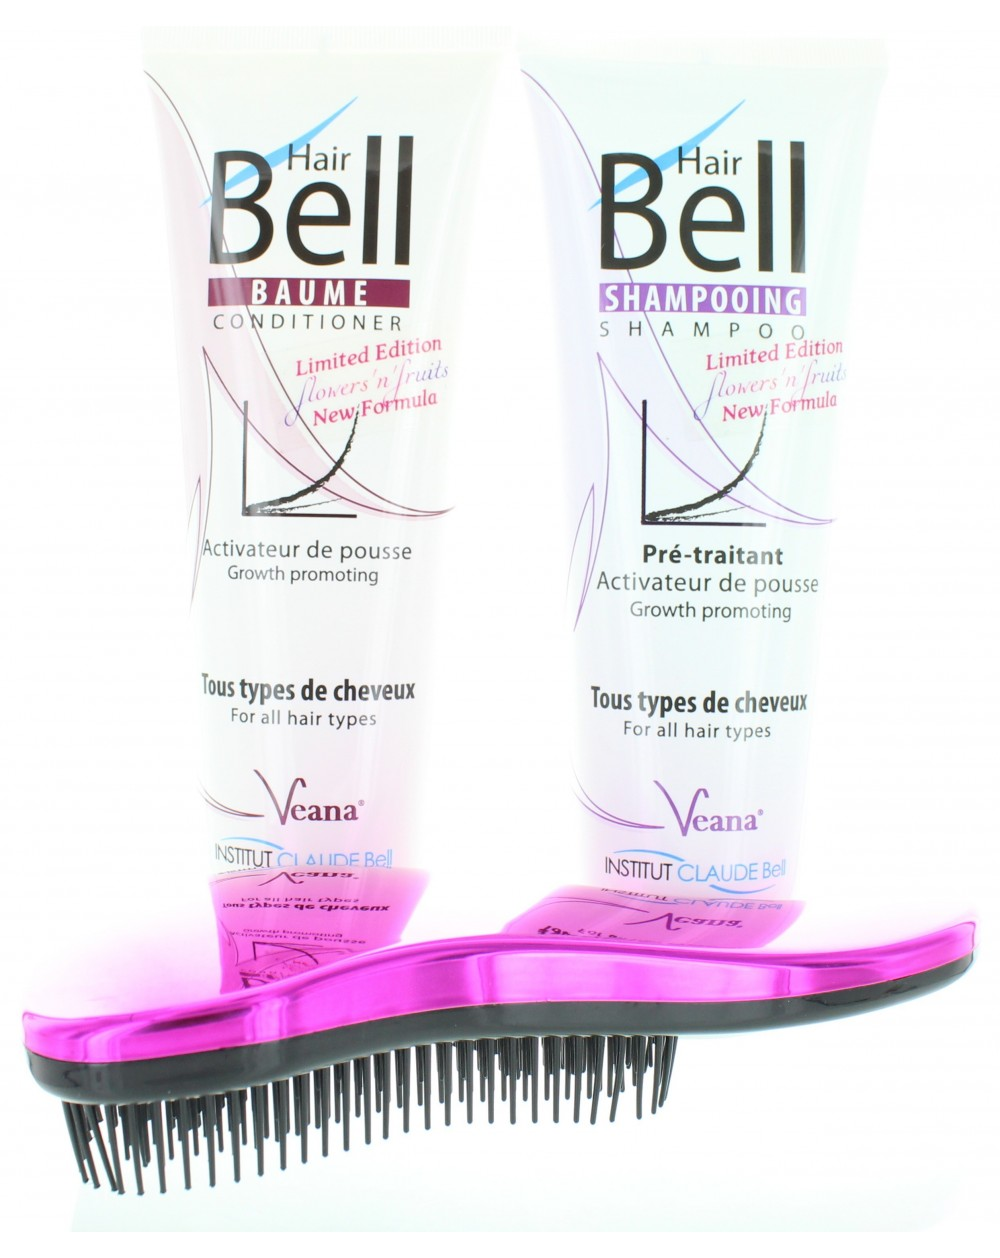 HairBell Shampoo + Conditioner flowers and fruits + DeTangler hot pink metallic